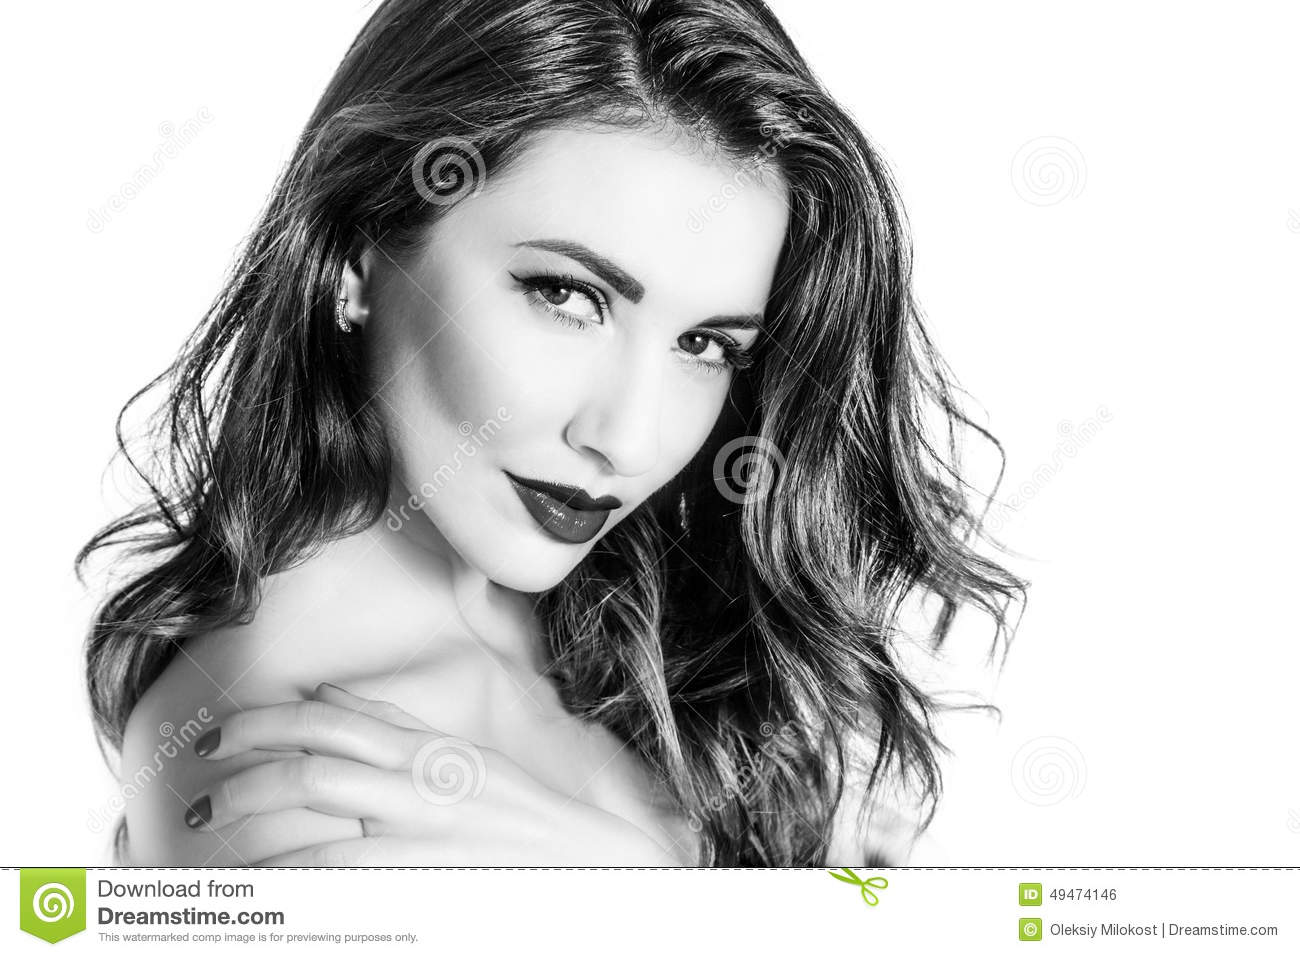 Black and white portrait of cute woman touching shoulder closeup